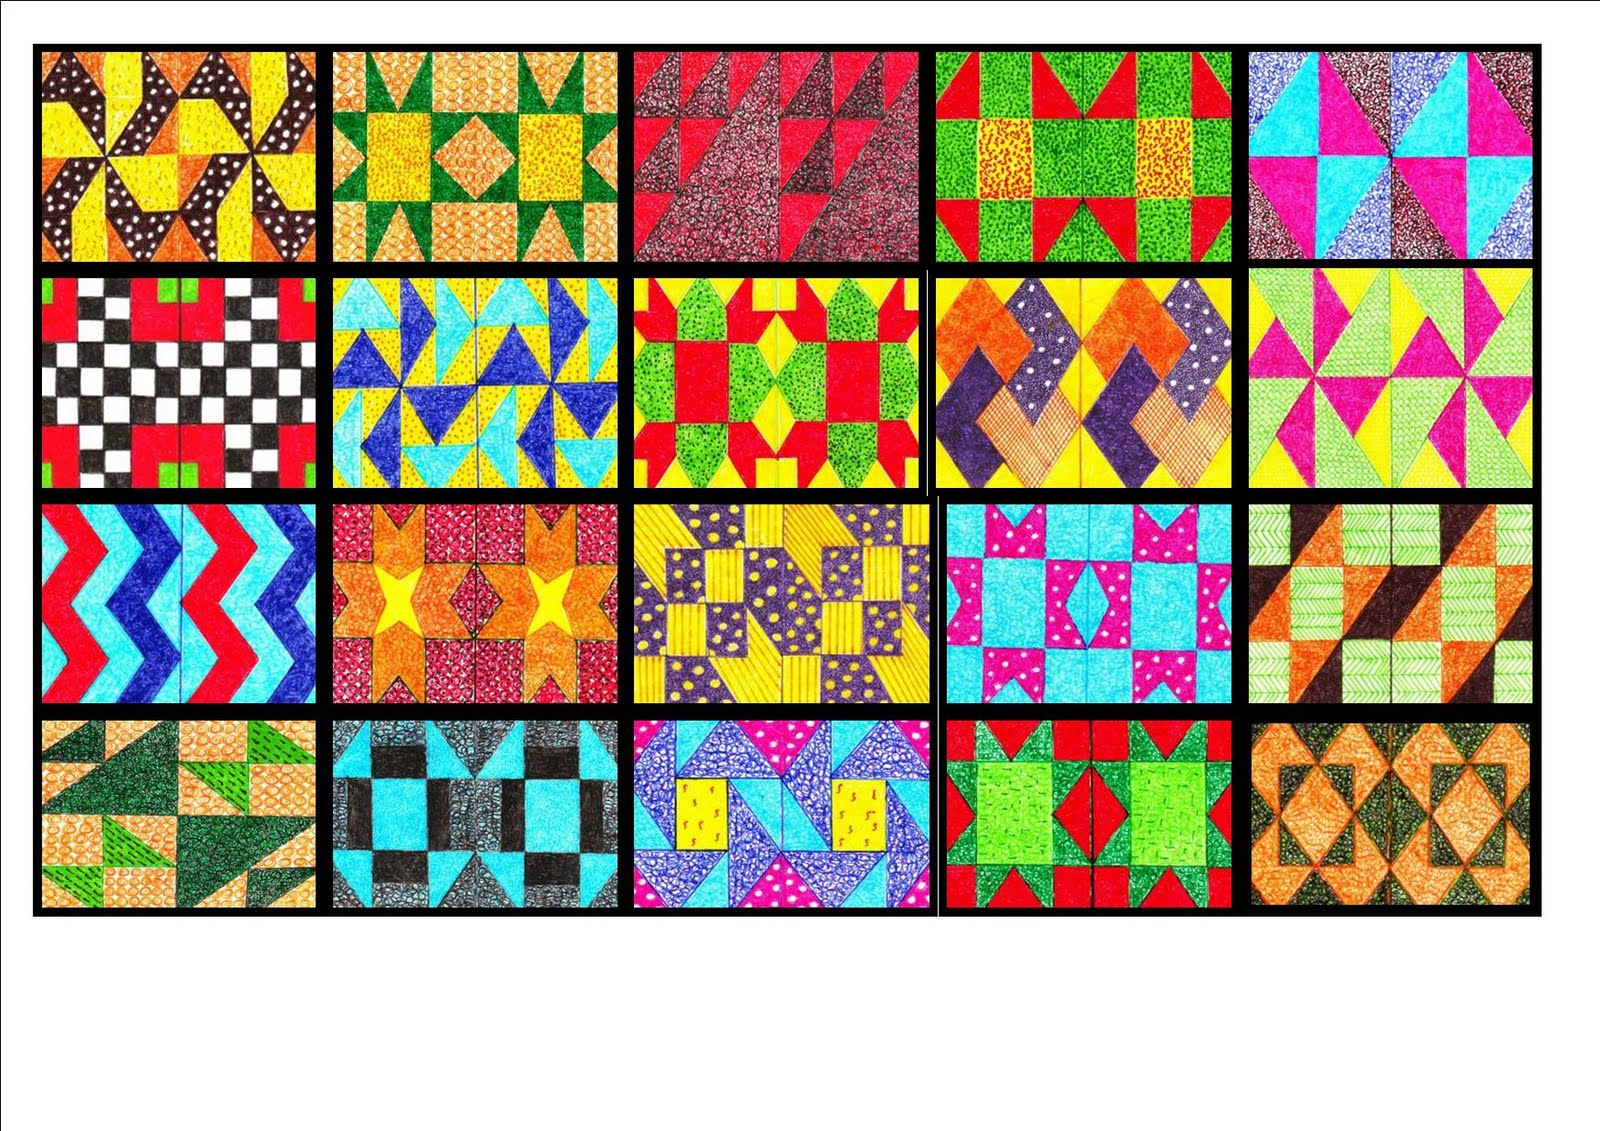 Val de Vries Art Blog: Patchwork Quilt Block Paintings continued. : quilt paintings - Adamdwight.com